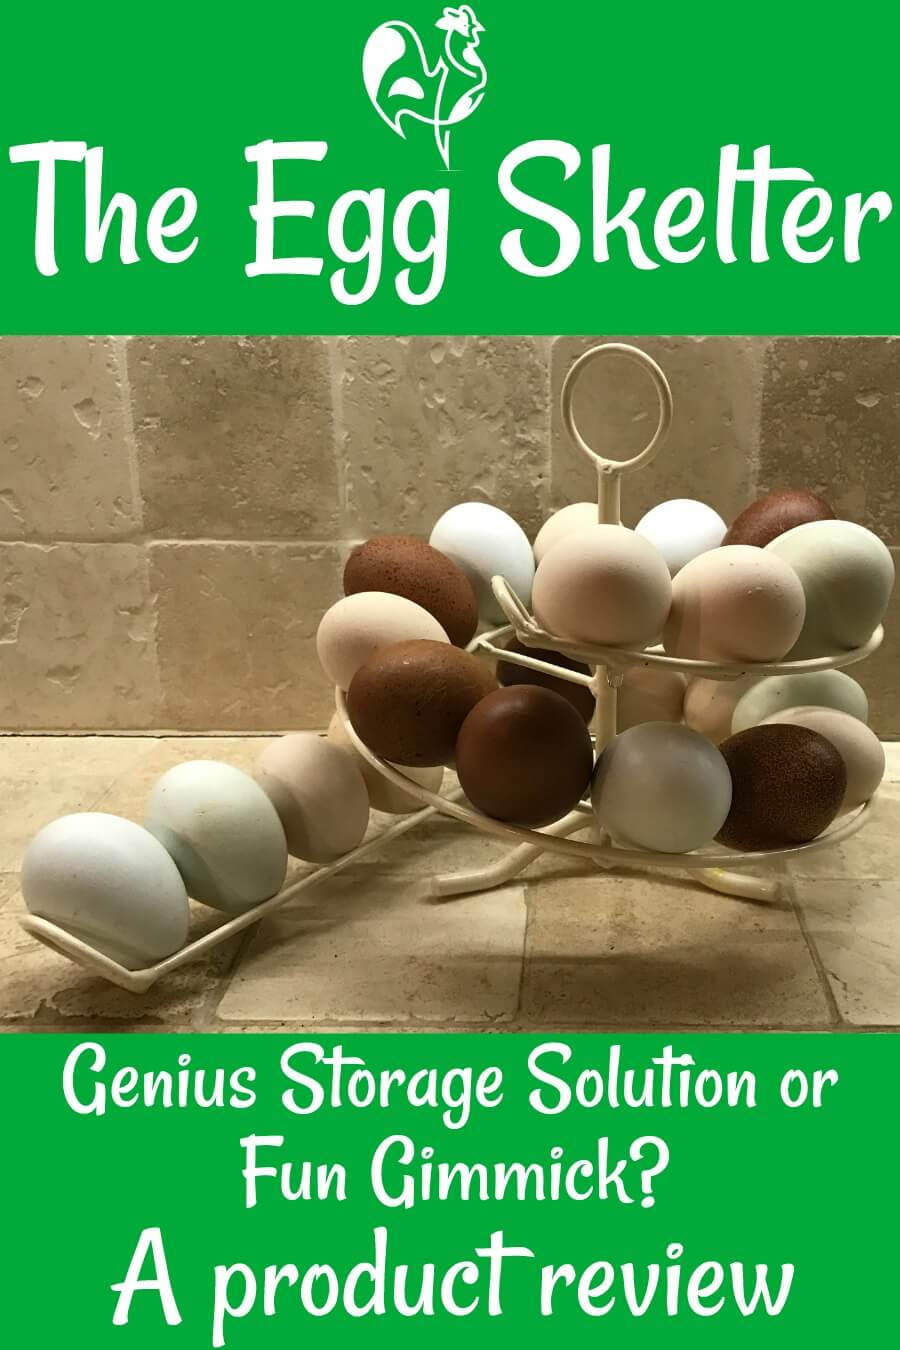 The Egg Skelter - product review link.